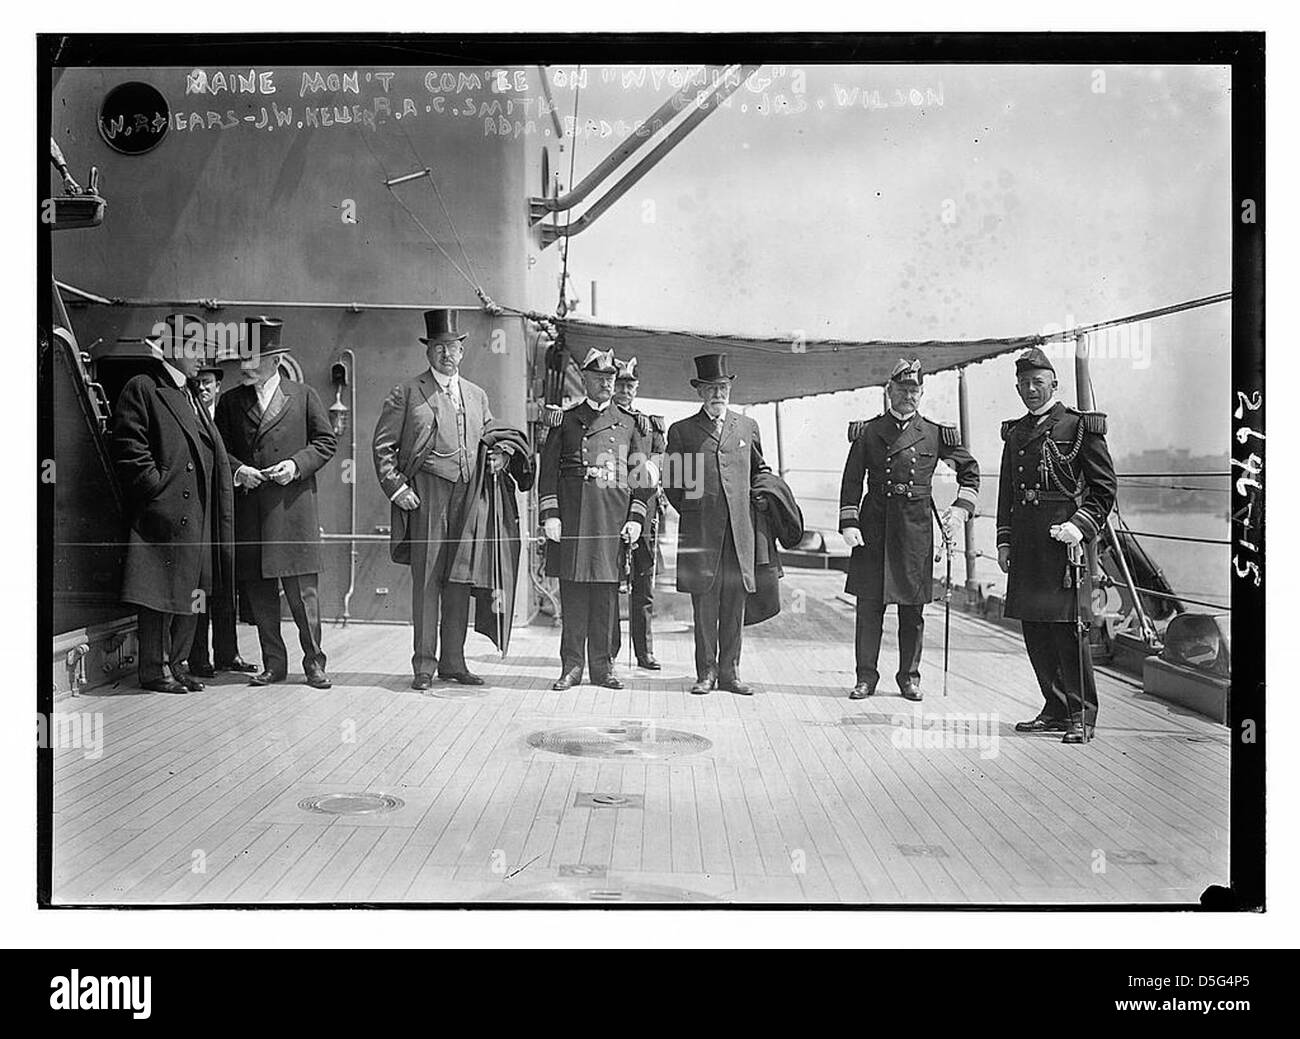 MAINE Mon't comm'ee [Monument Committee] on WYOMING, W.R. Hears[t], J.W. Keller, R.A.C. Smith, Adm Badger, - Stock Image